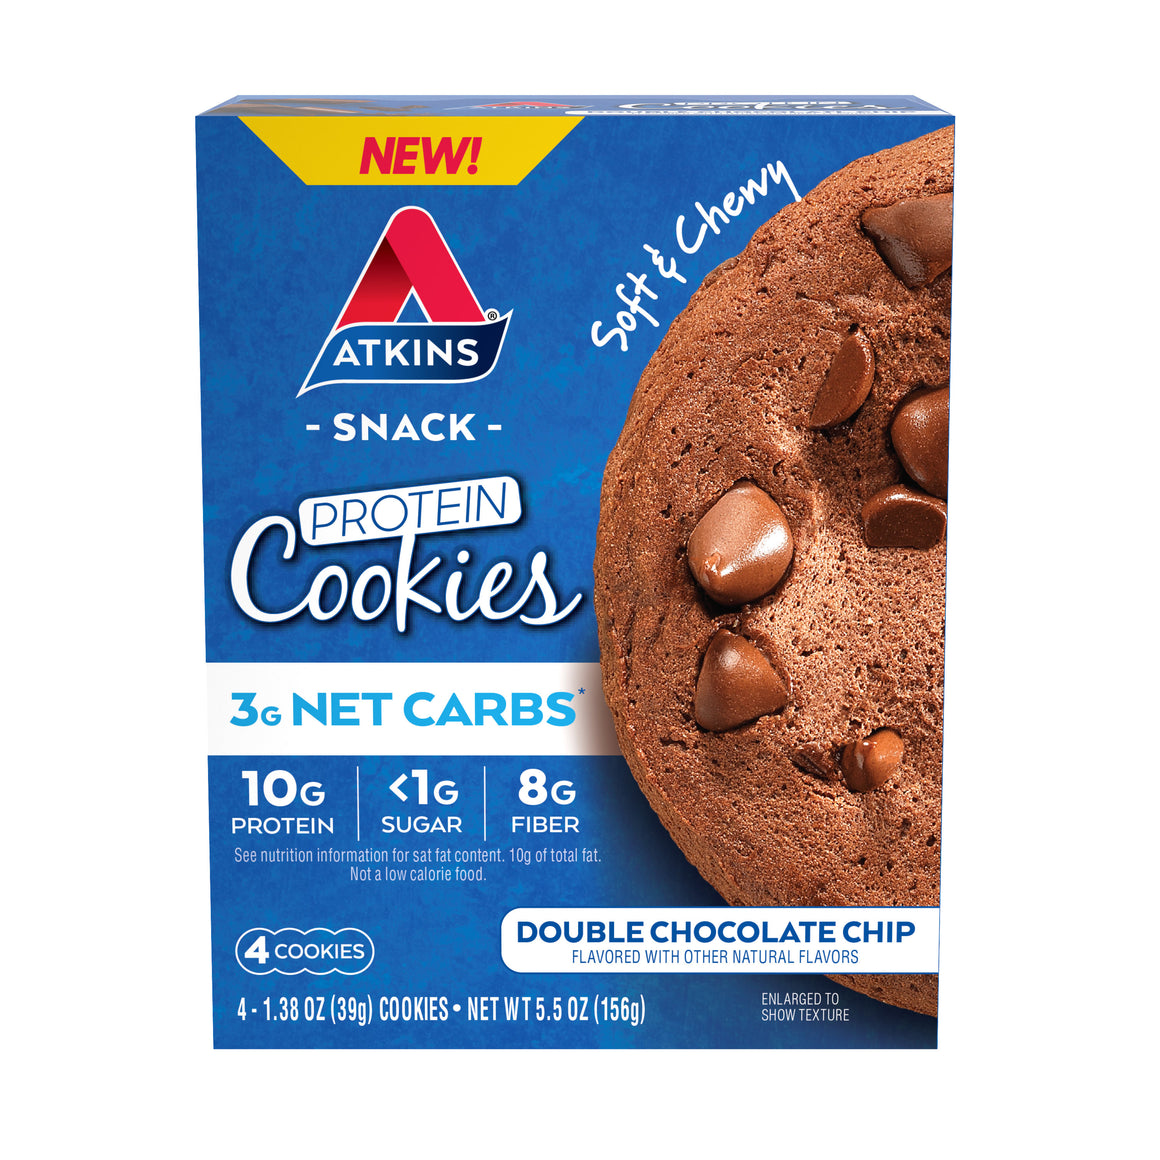 Atkins - Protein Cookies - Double Chocolate Chip - 4 Cookies